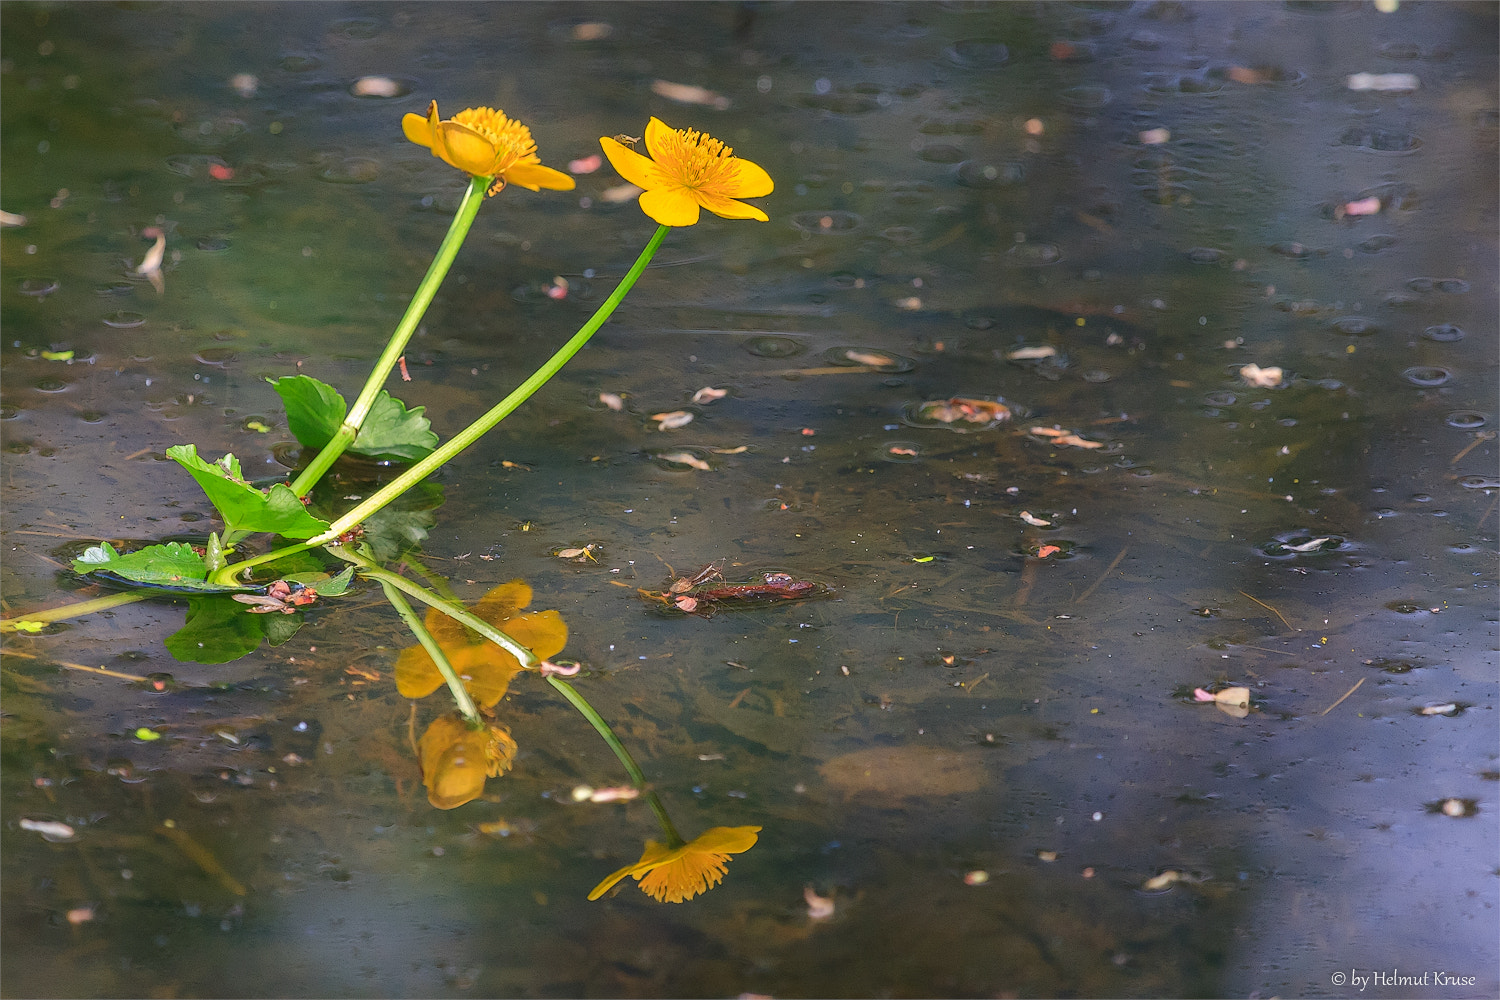 Photograph Flower Reflection at the Lake by Helmut Kruse on 500px